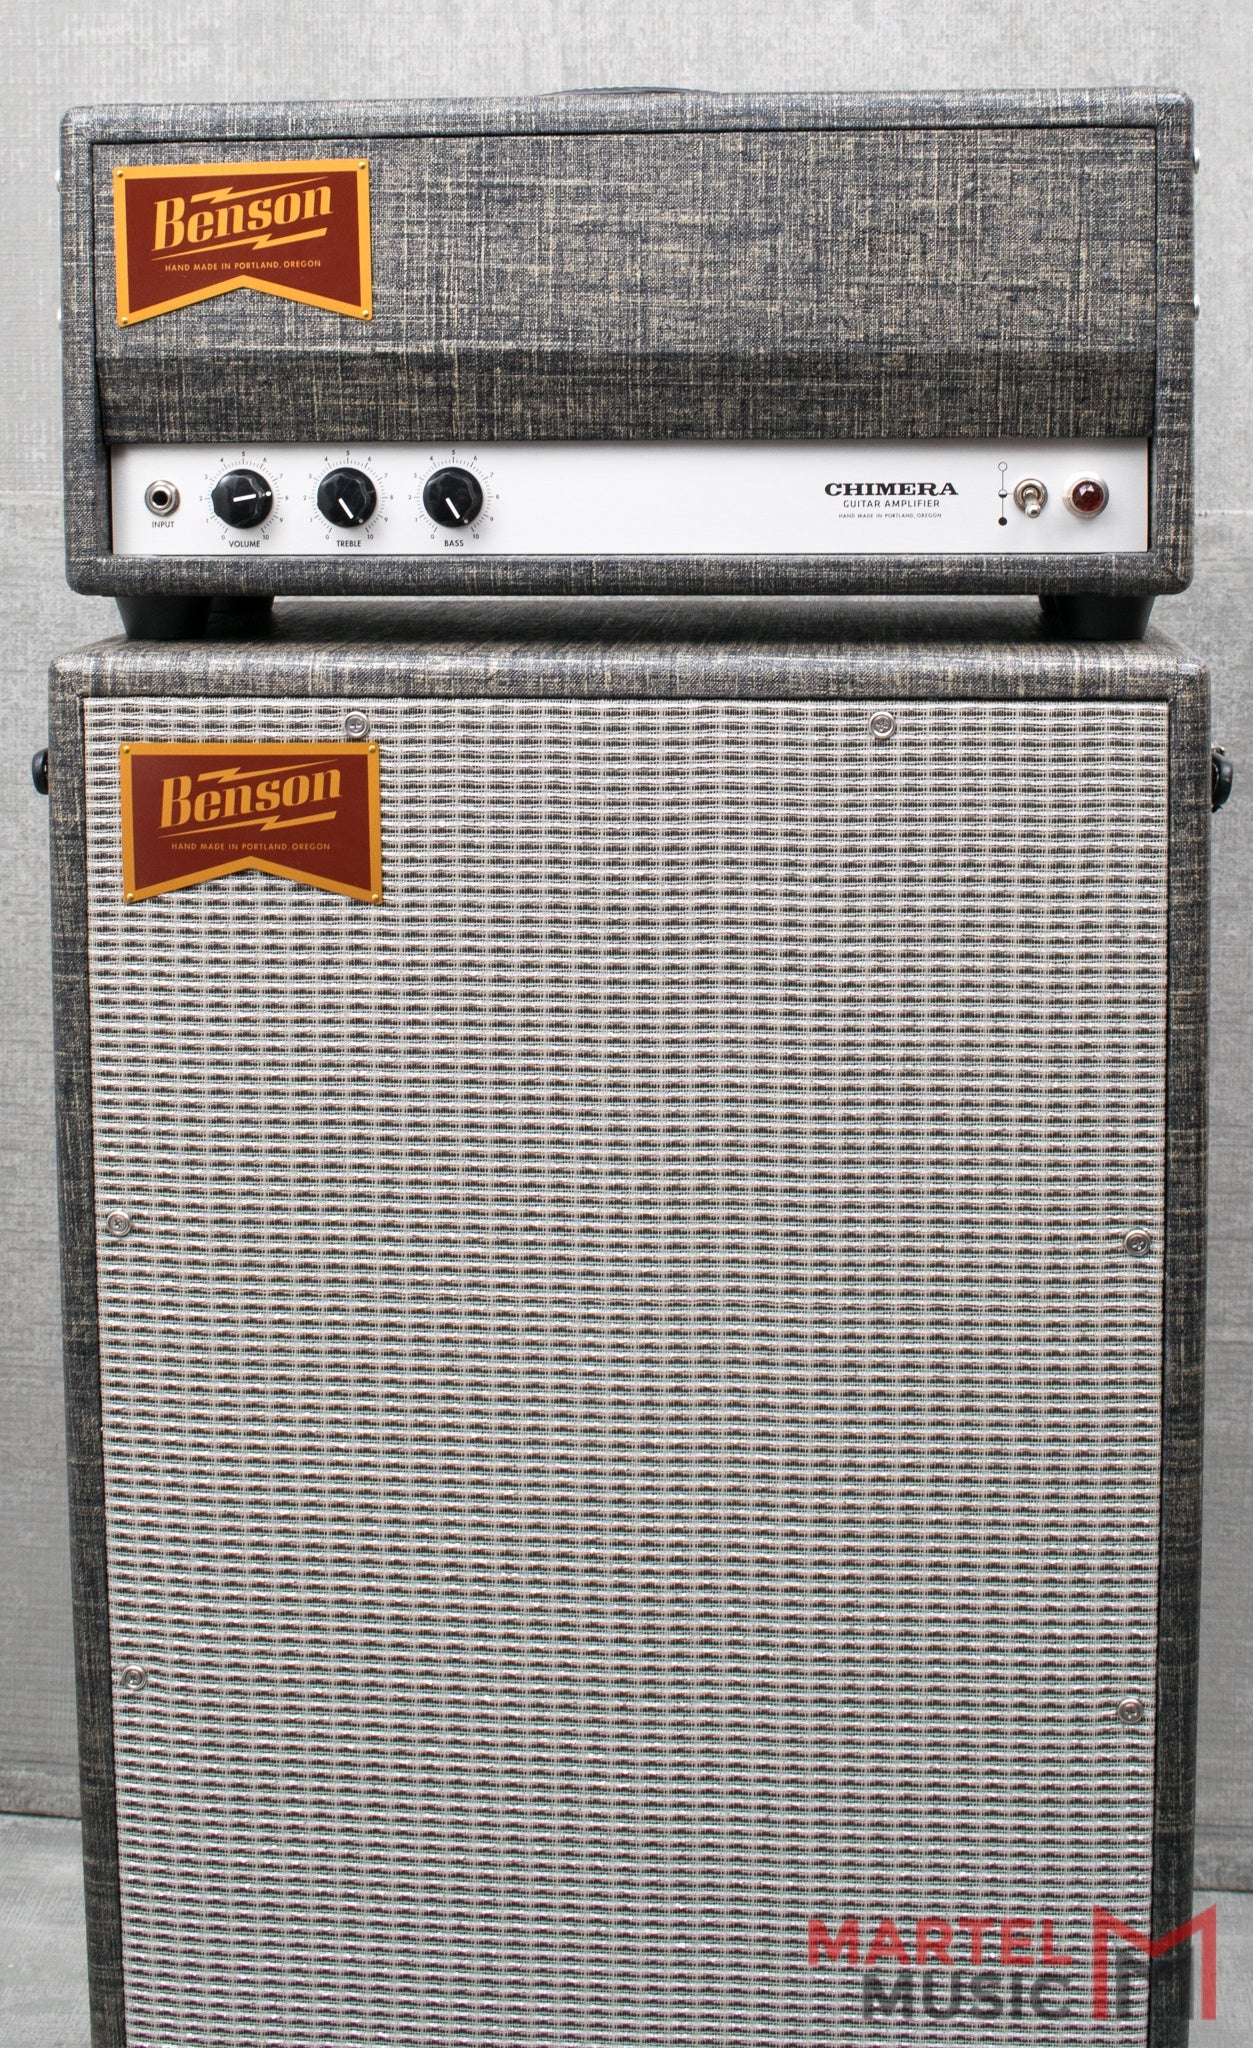 Benson Chimera 30 Watt Guitar Amp Martel Music Store Low Amplifier Is Intended To Be Used In Conjunction With An Electric